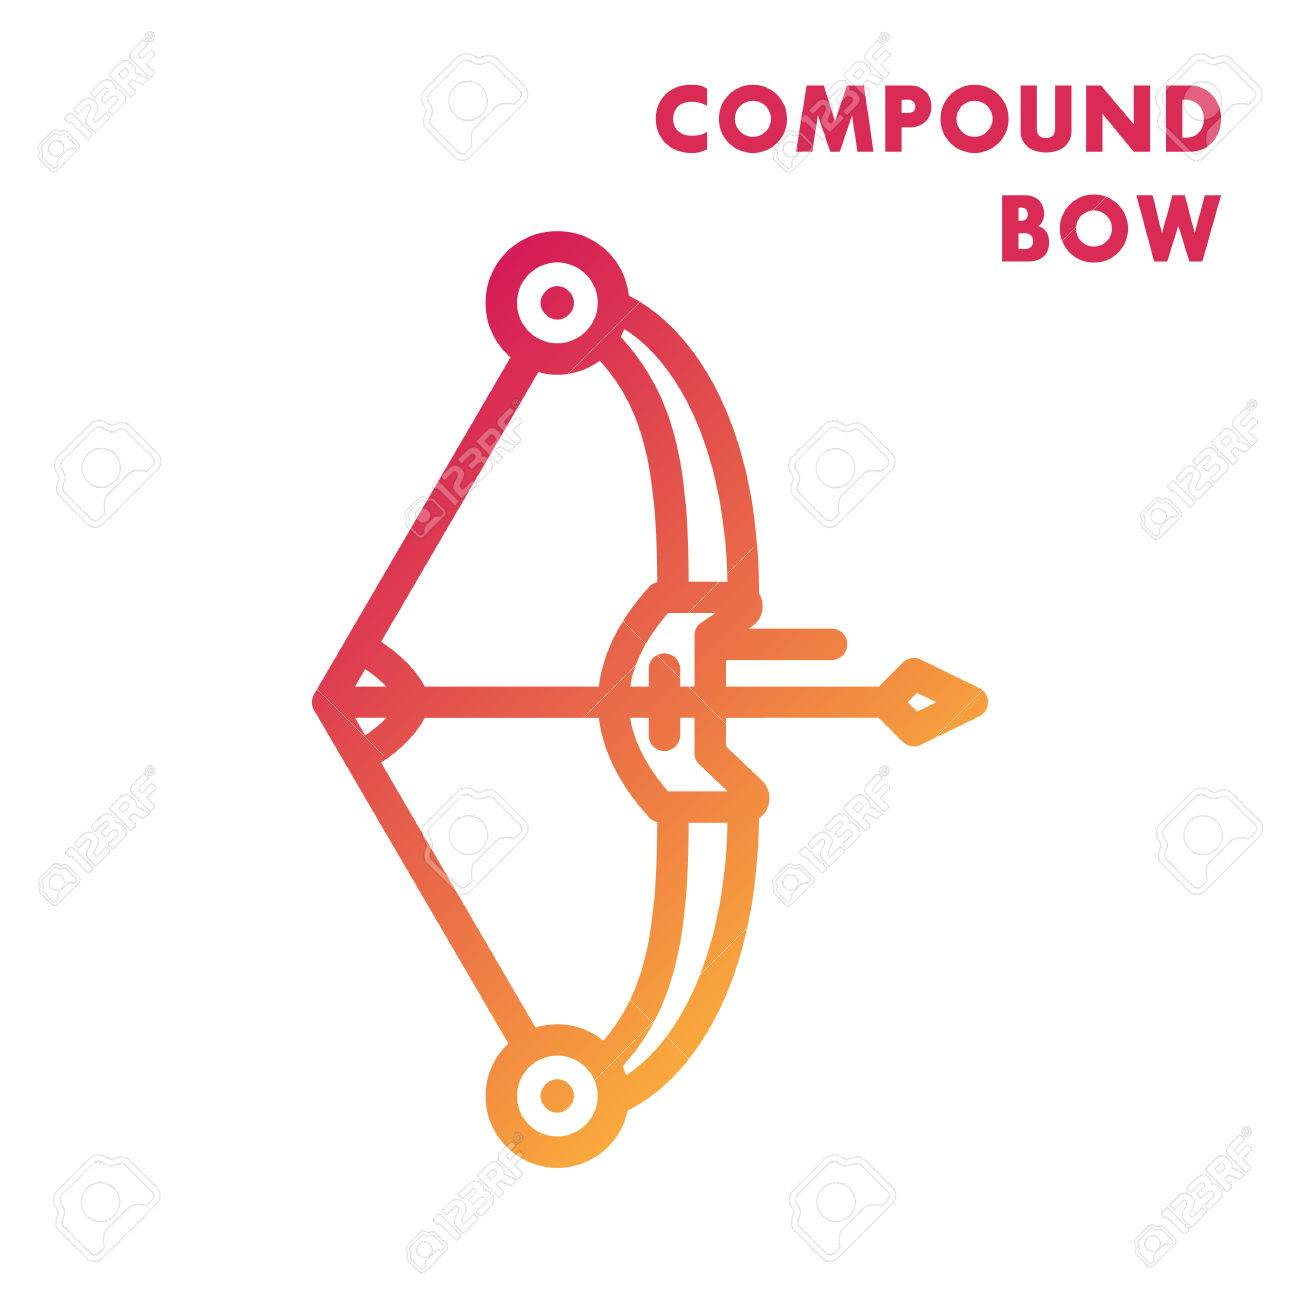 compound bow icon, line art.